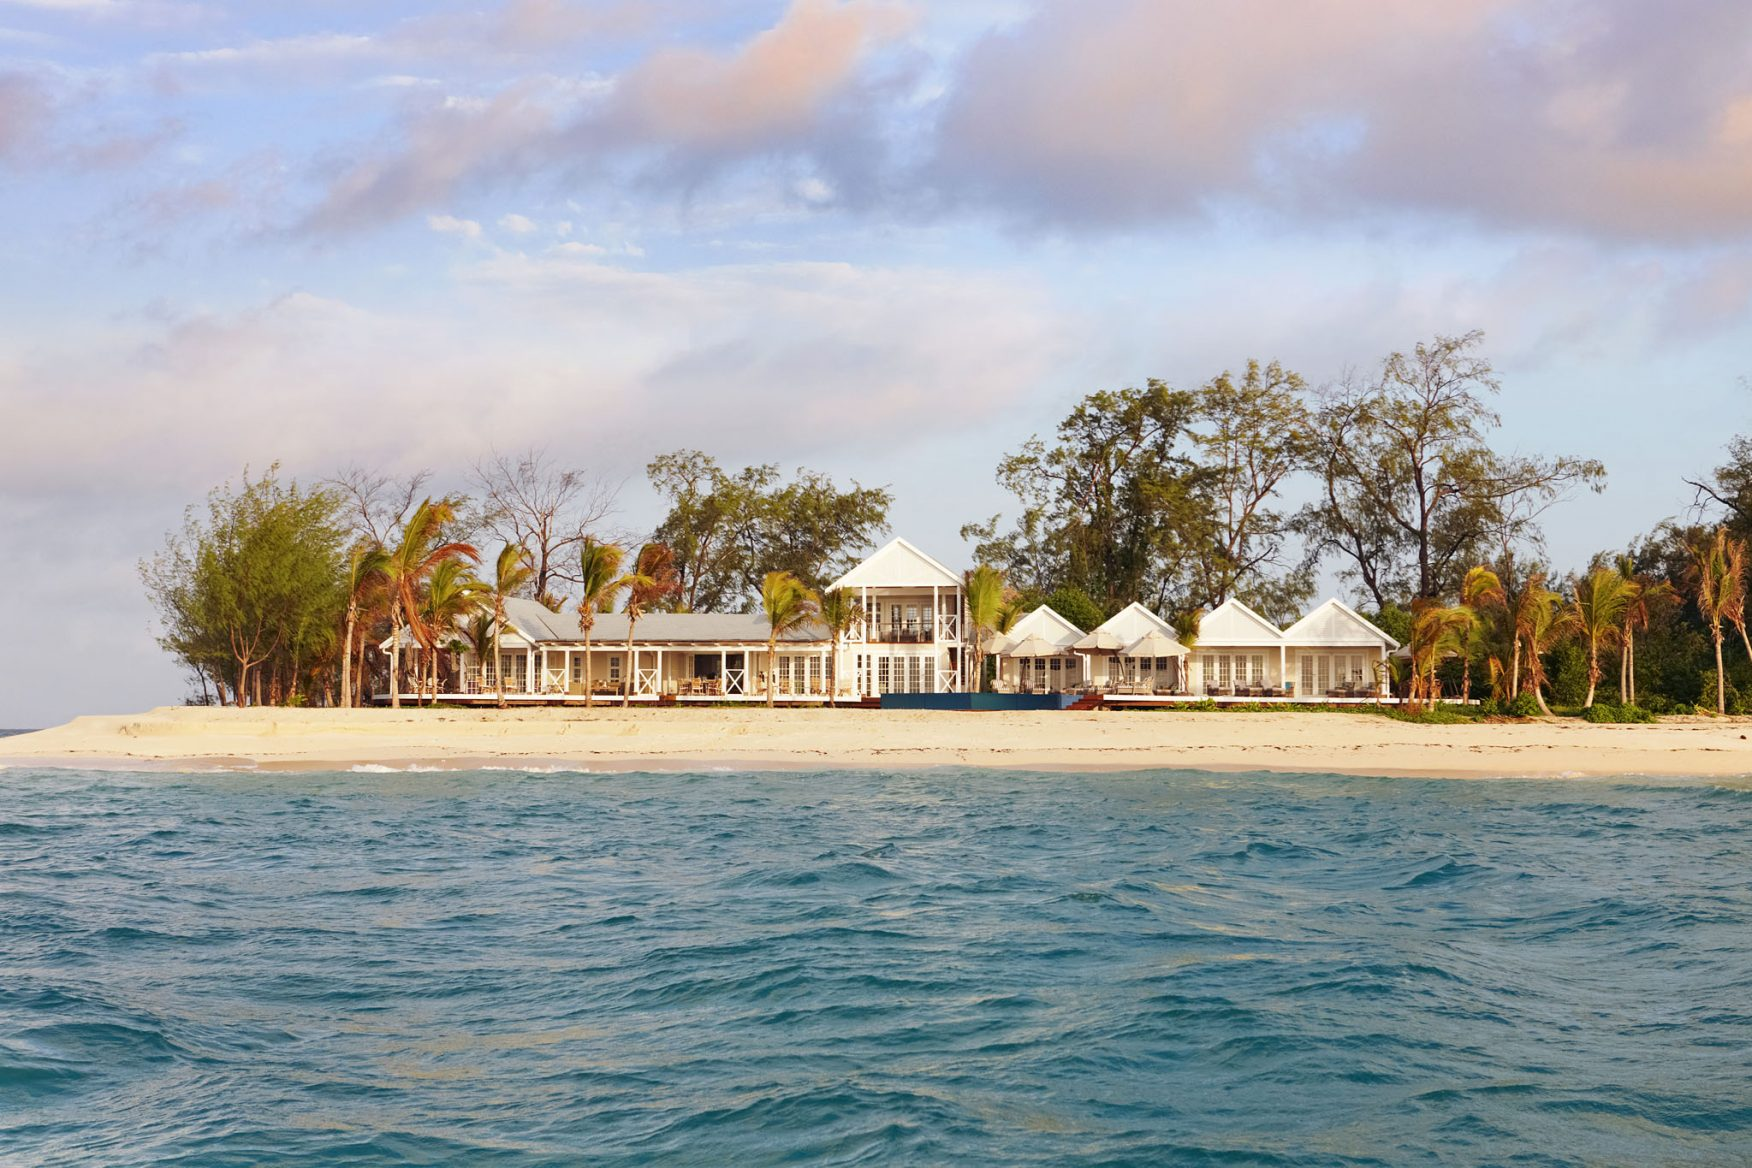 villa-view-from-water